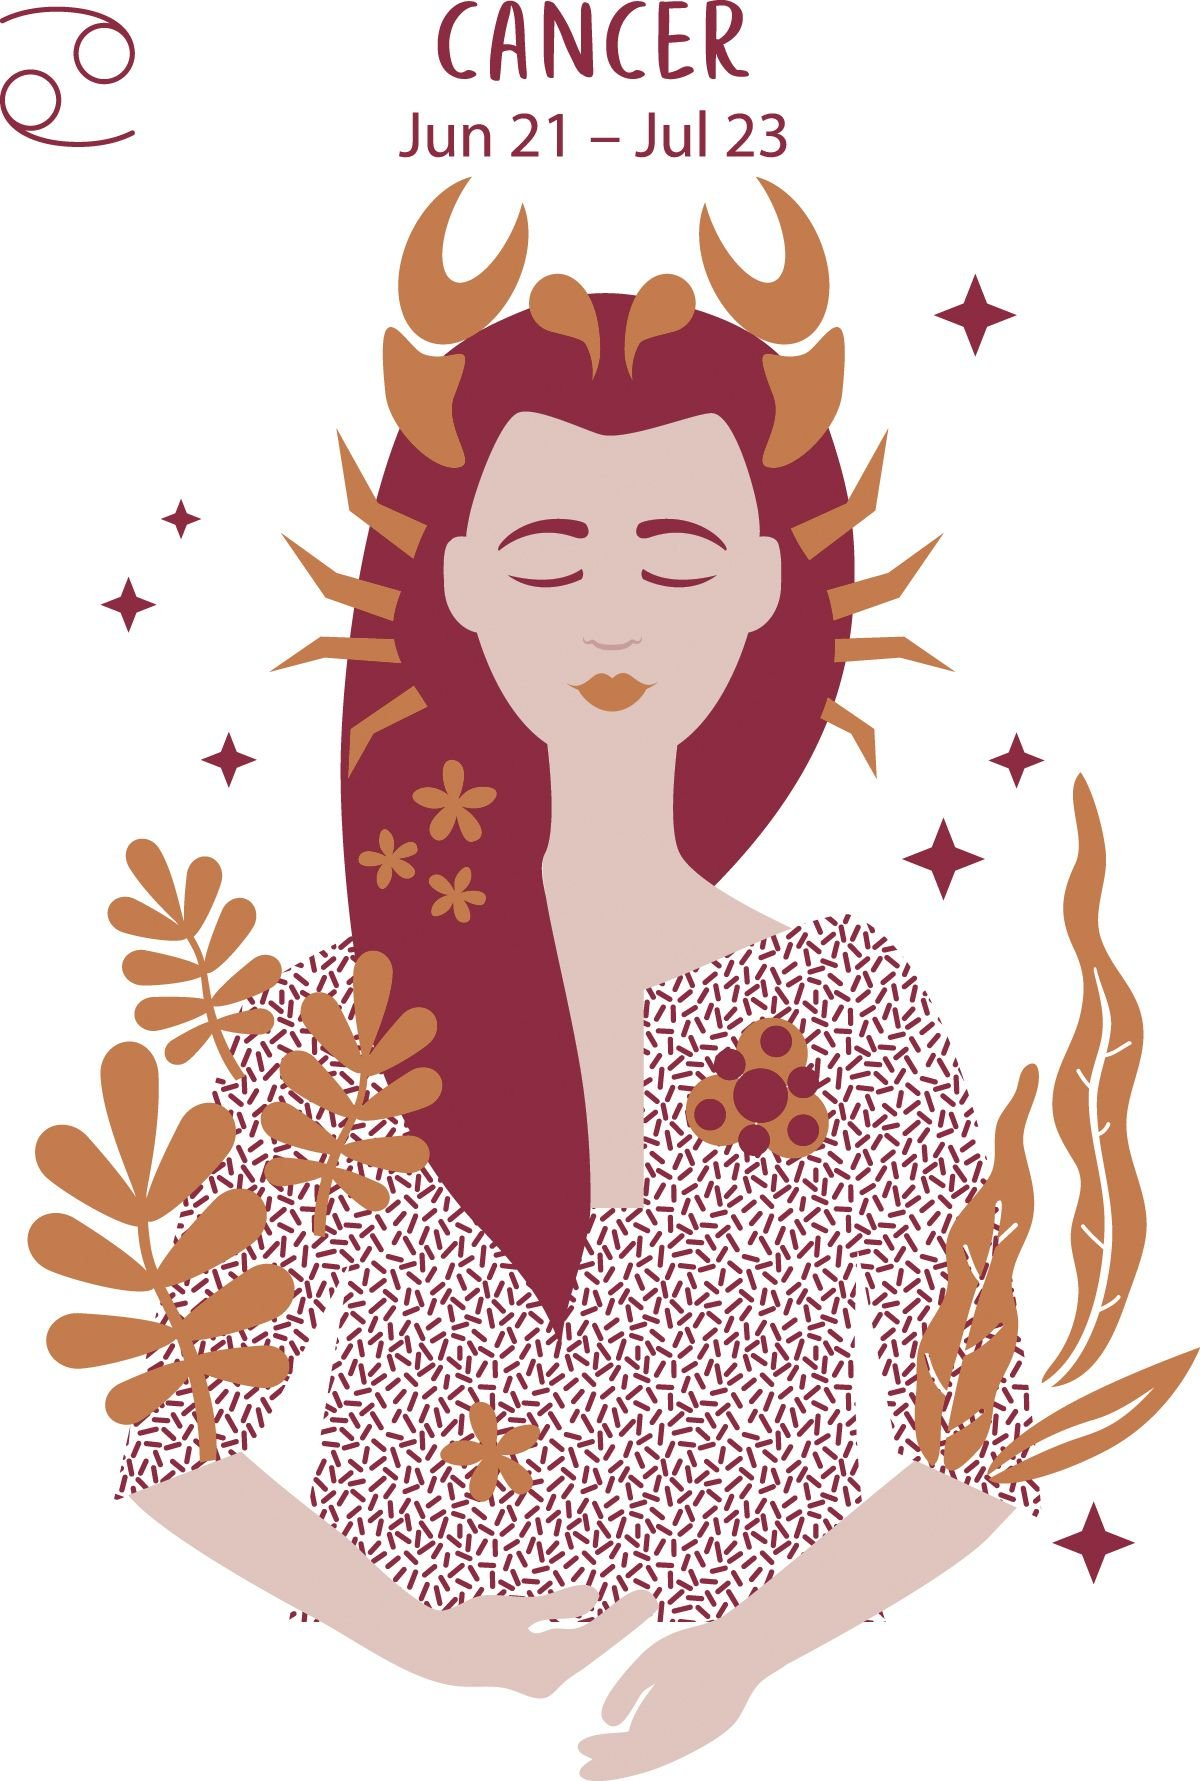 Gemini (June 21 - July 23) represented by a woman with a crab-inspired crown.